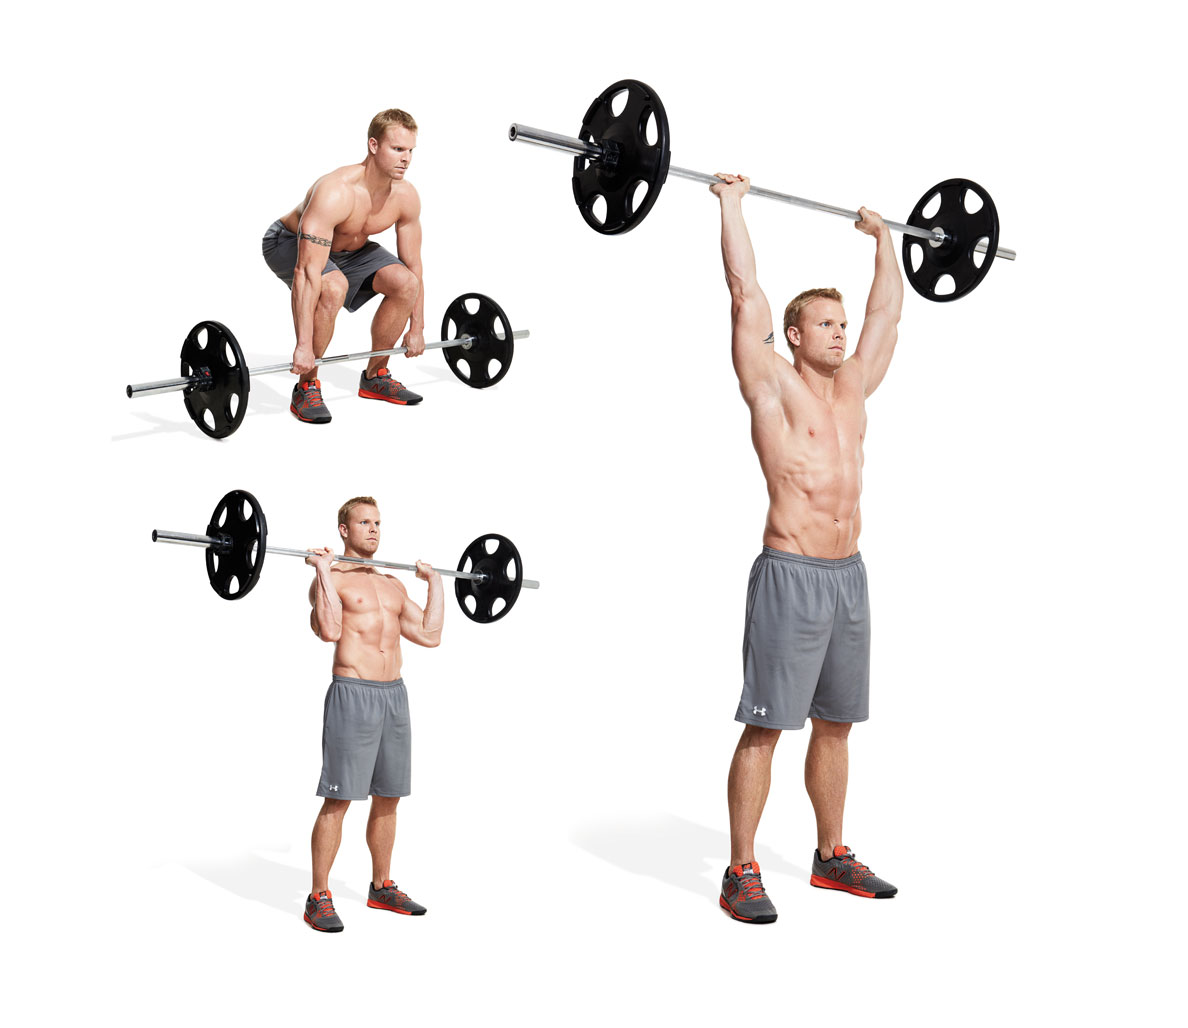 25 Strength Training Exercises For The Best Upper Body Workout